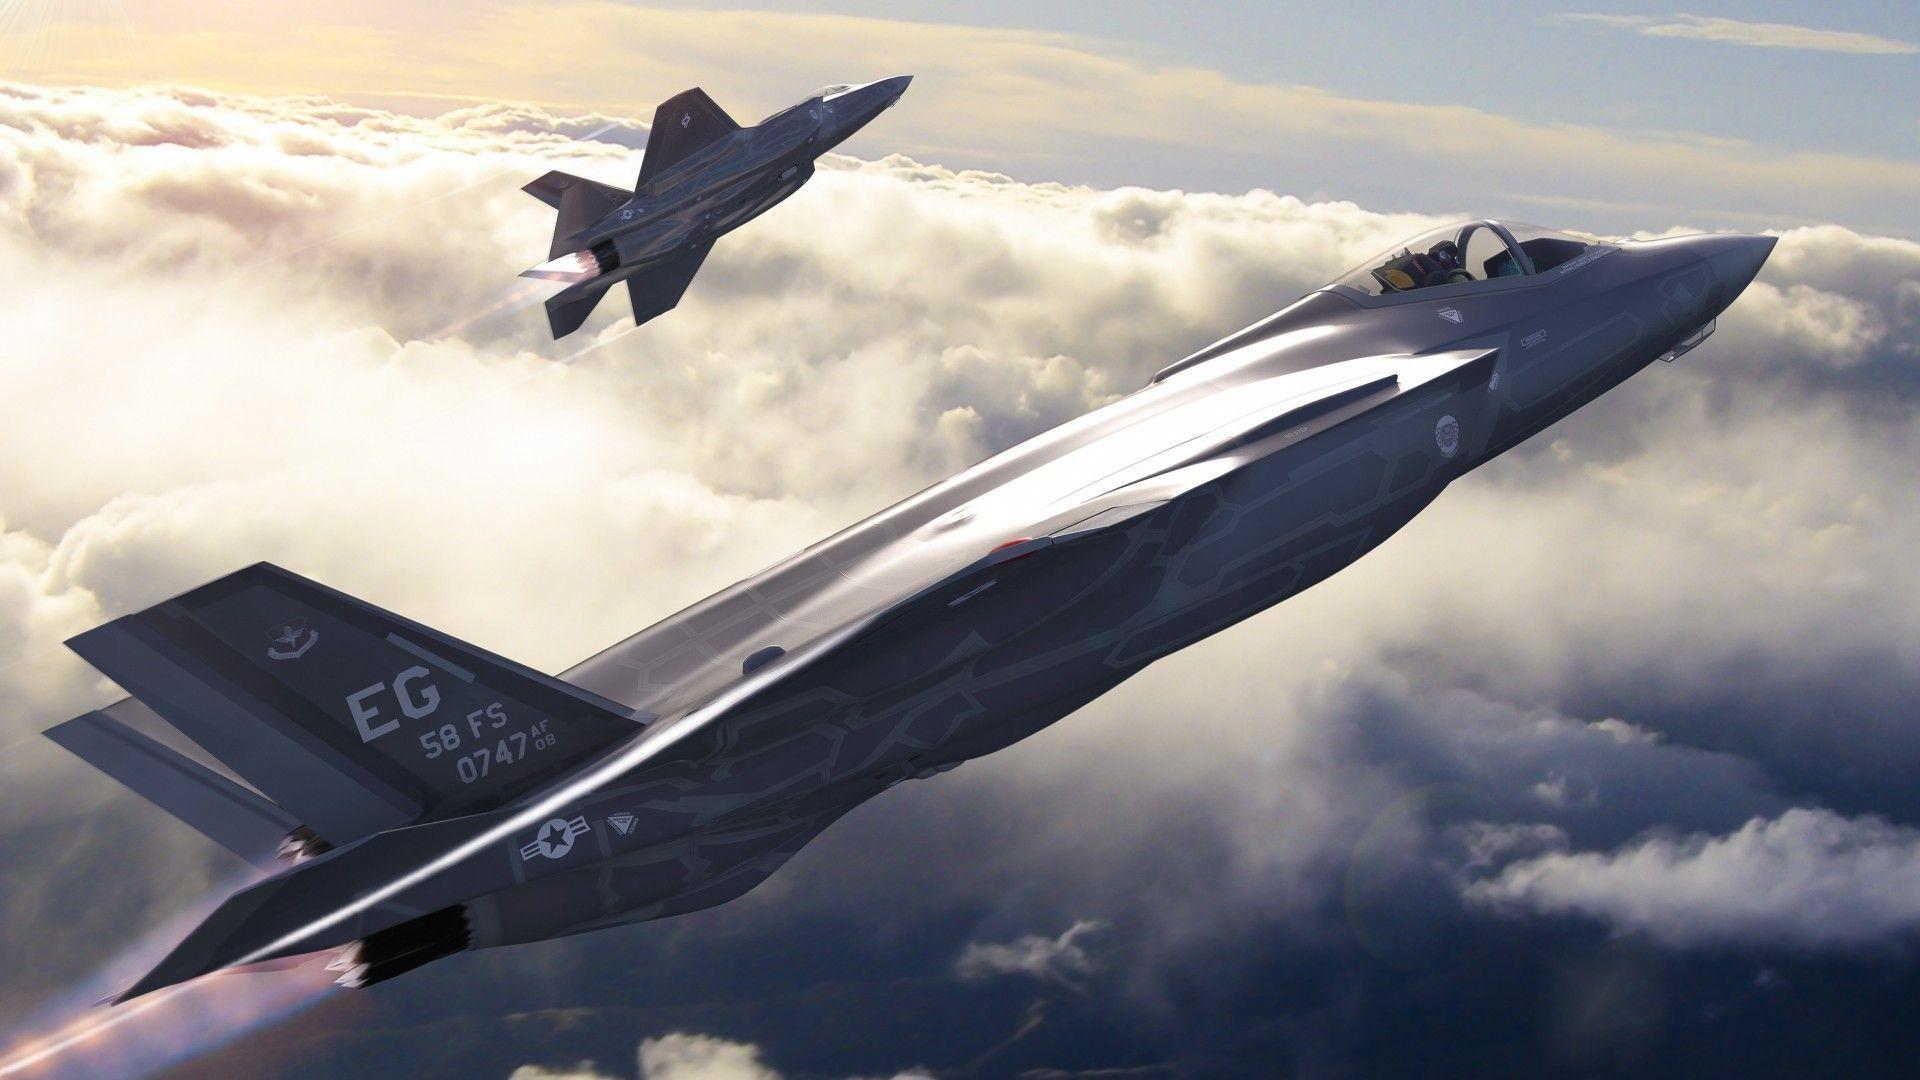 F 35 Wallpapers Wallpaper Cave HD Wallpapers Download Free Images Wallpaper [1000image.com]